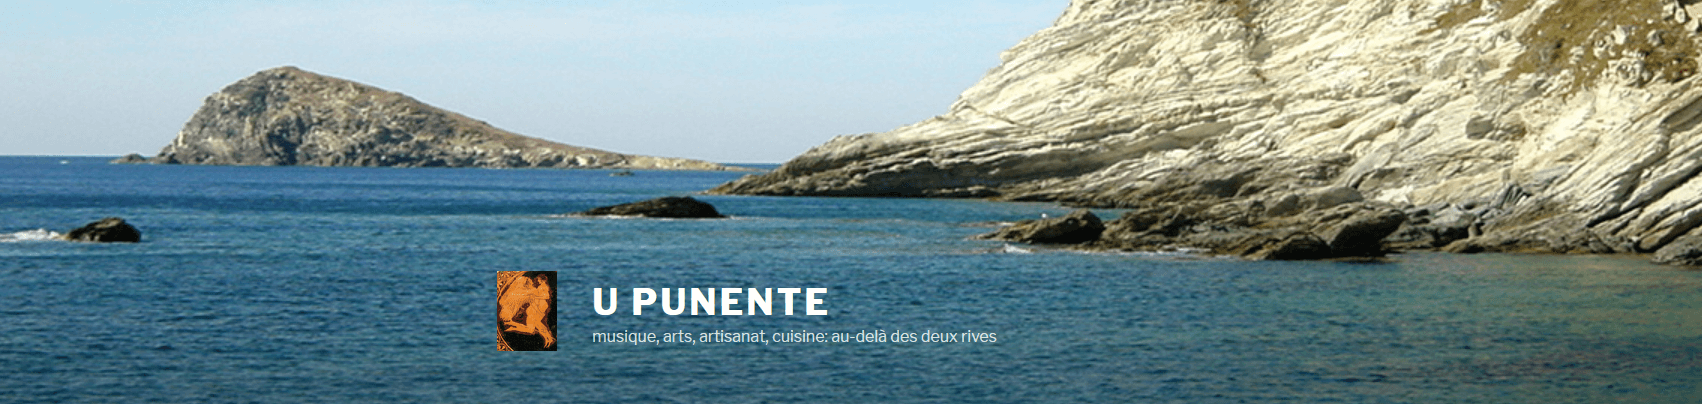 Association u punente haute corse 1